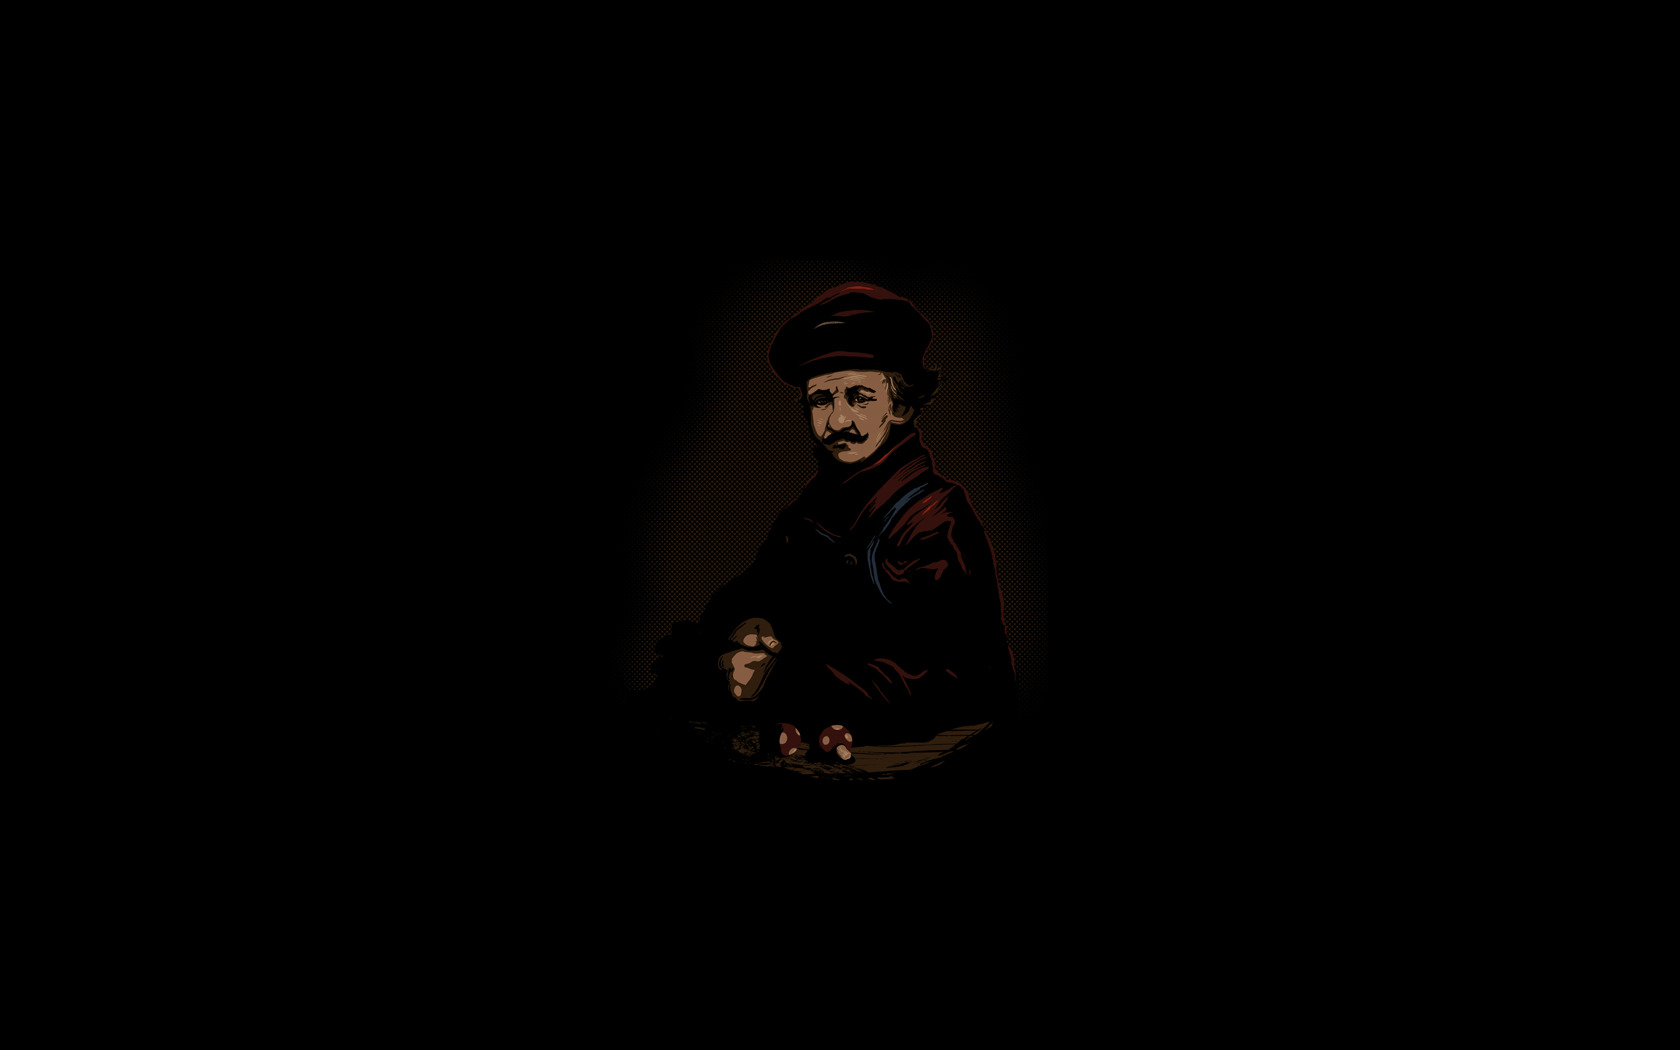 Mario rembrandt game HD Wallpaper